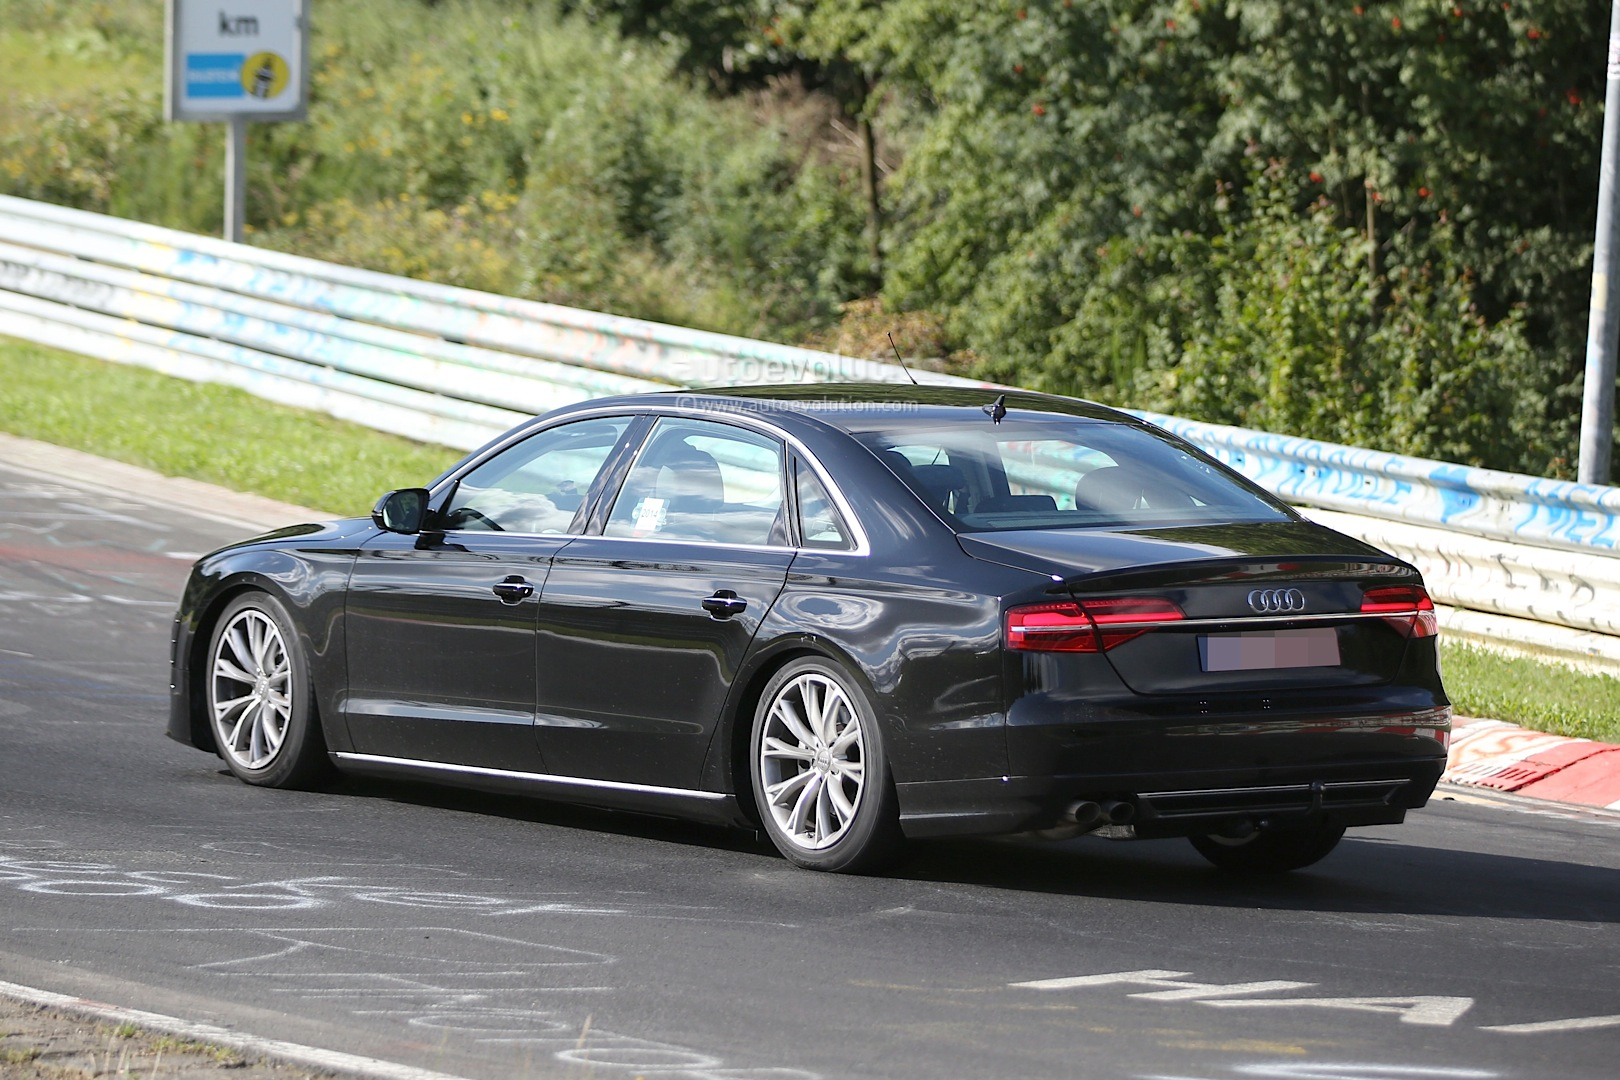 Spyshots: 2017 Audi A8 Test Mule Spotted at the Nurburgring ...